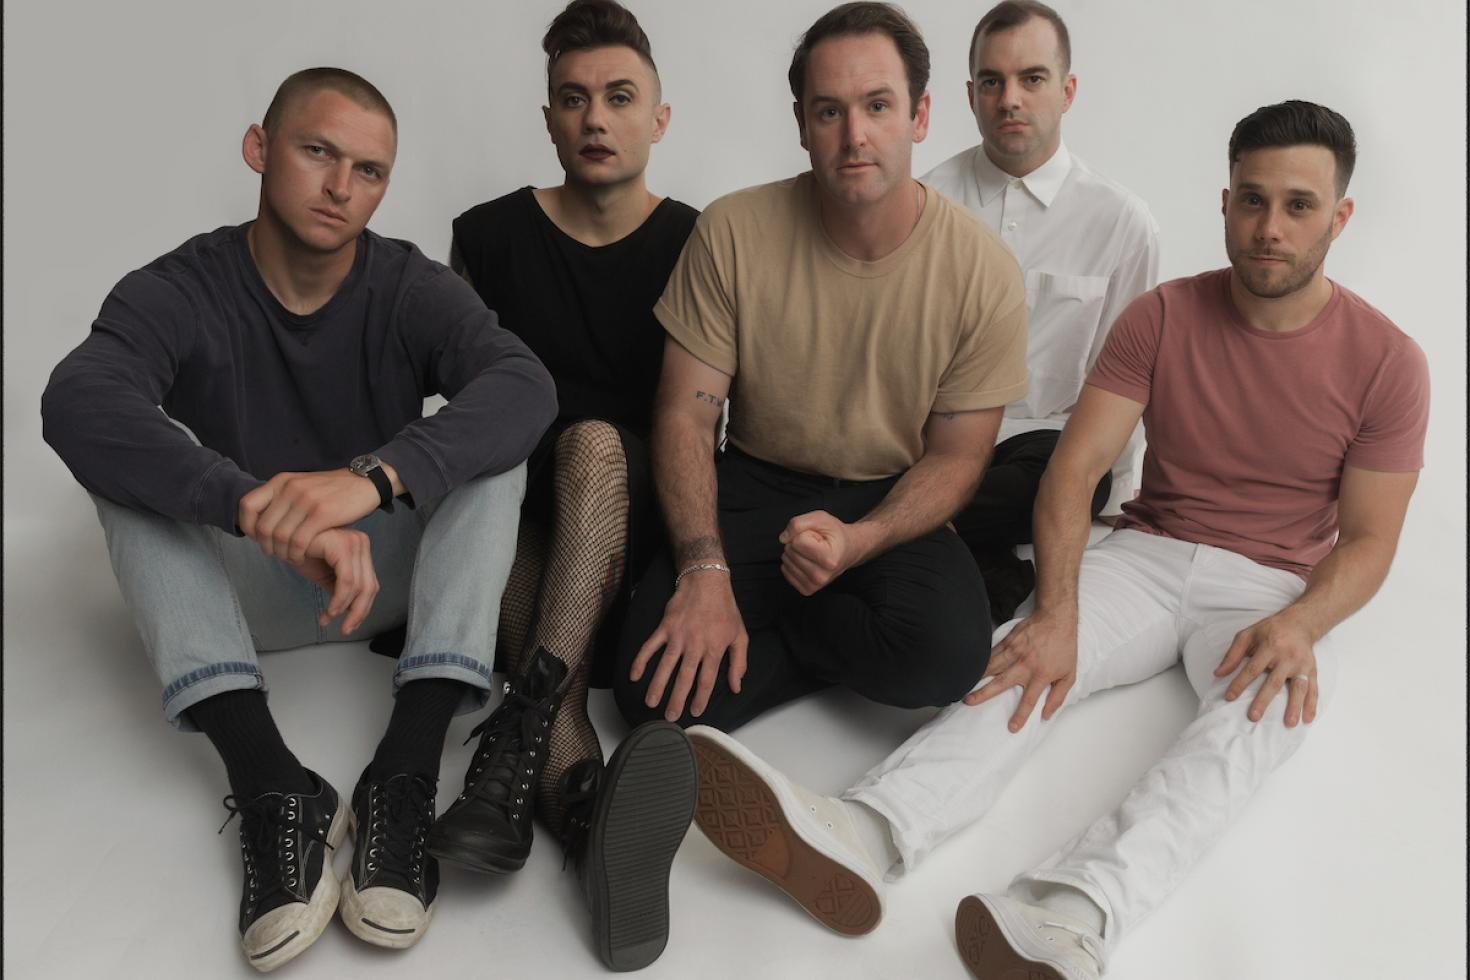 Ceremony debut video and title track from new album 'In The Spirit World Now'